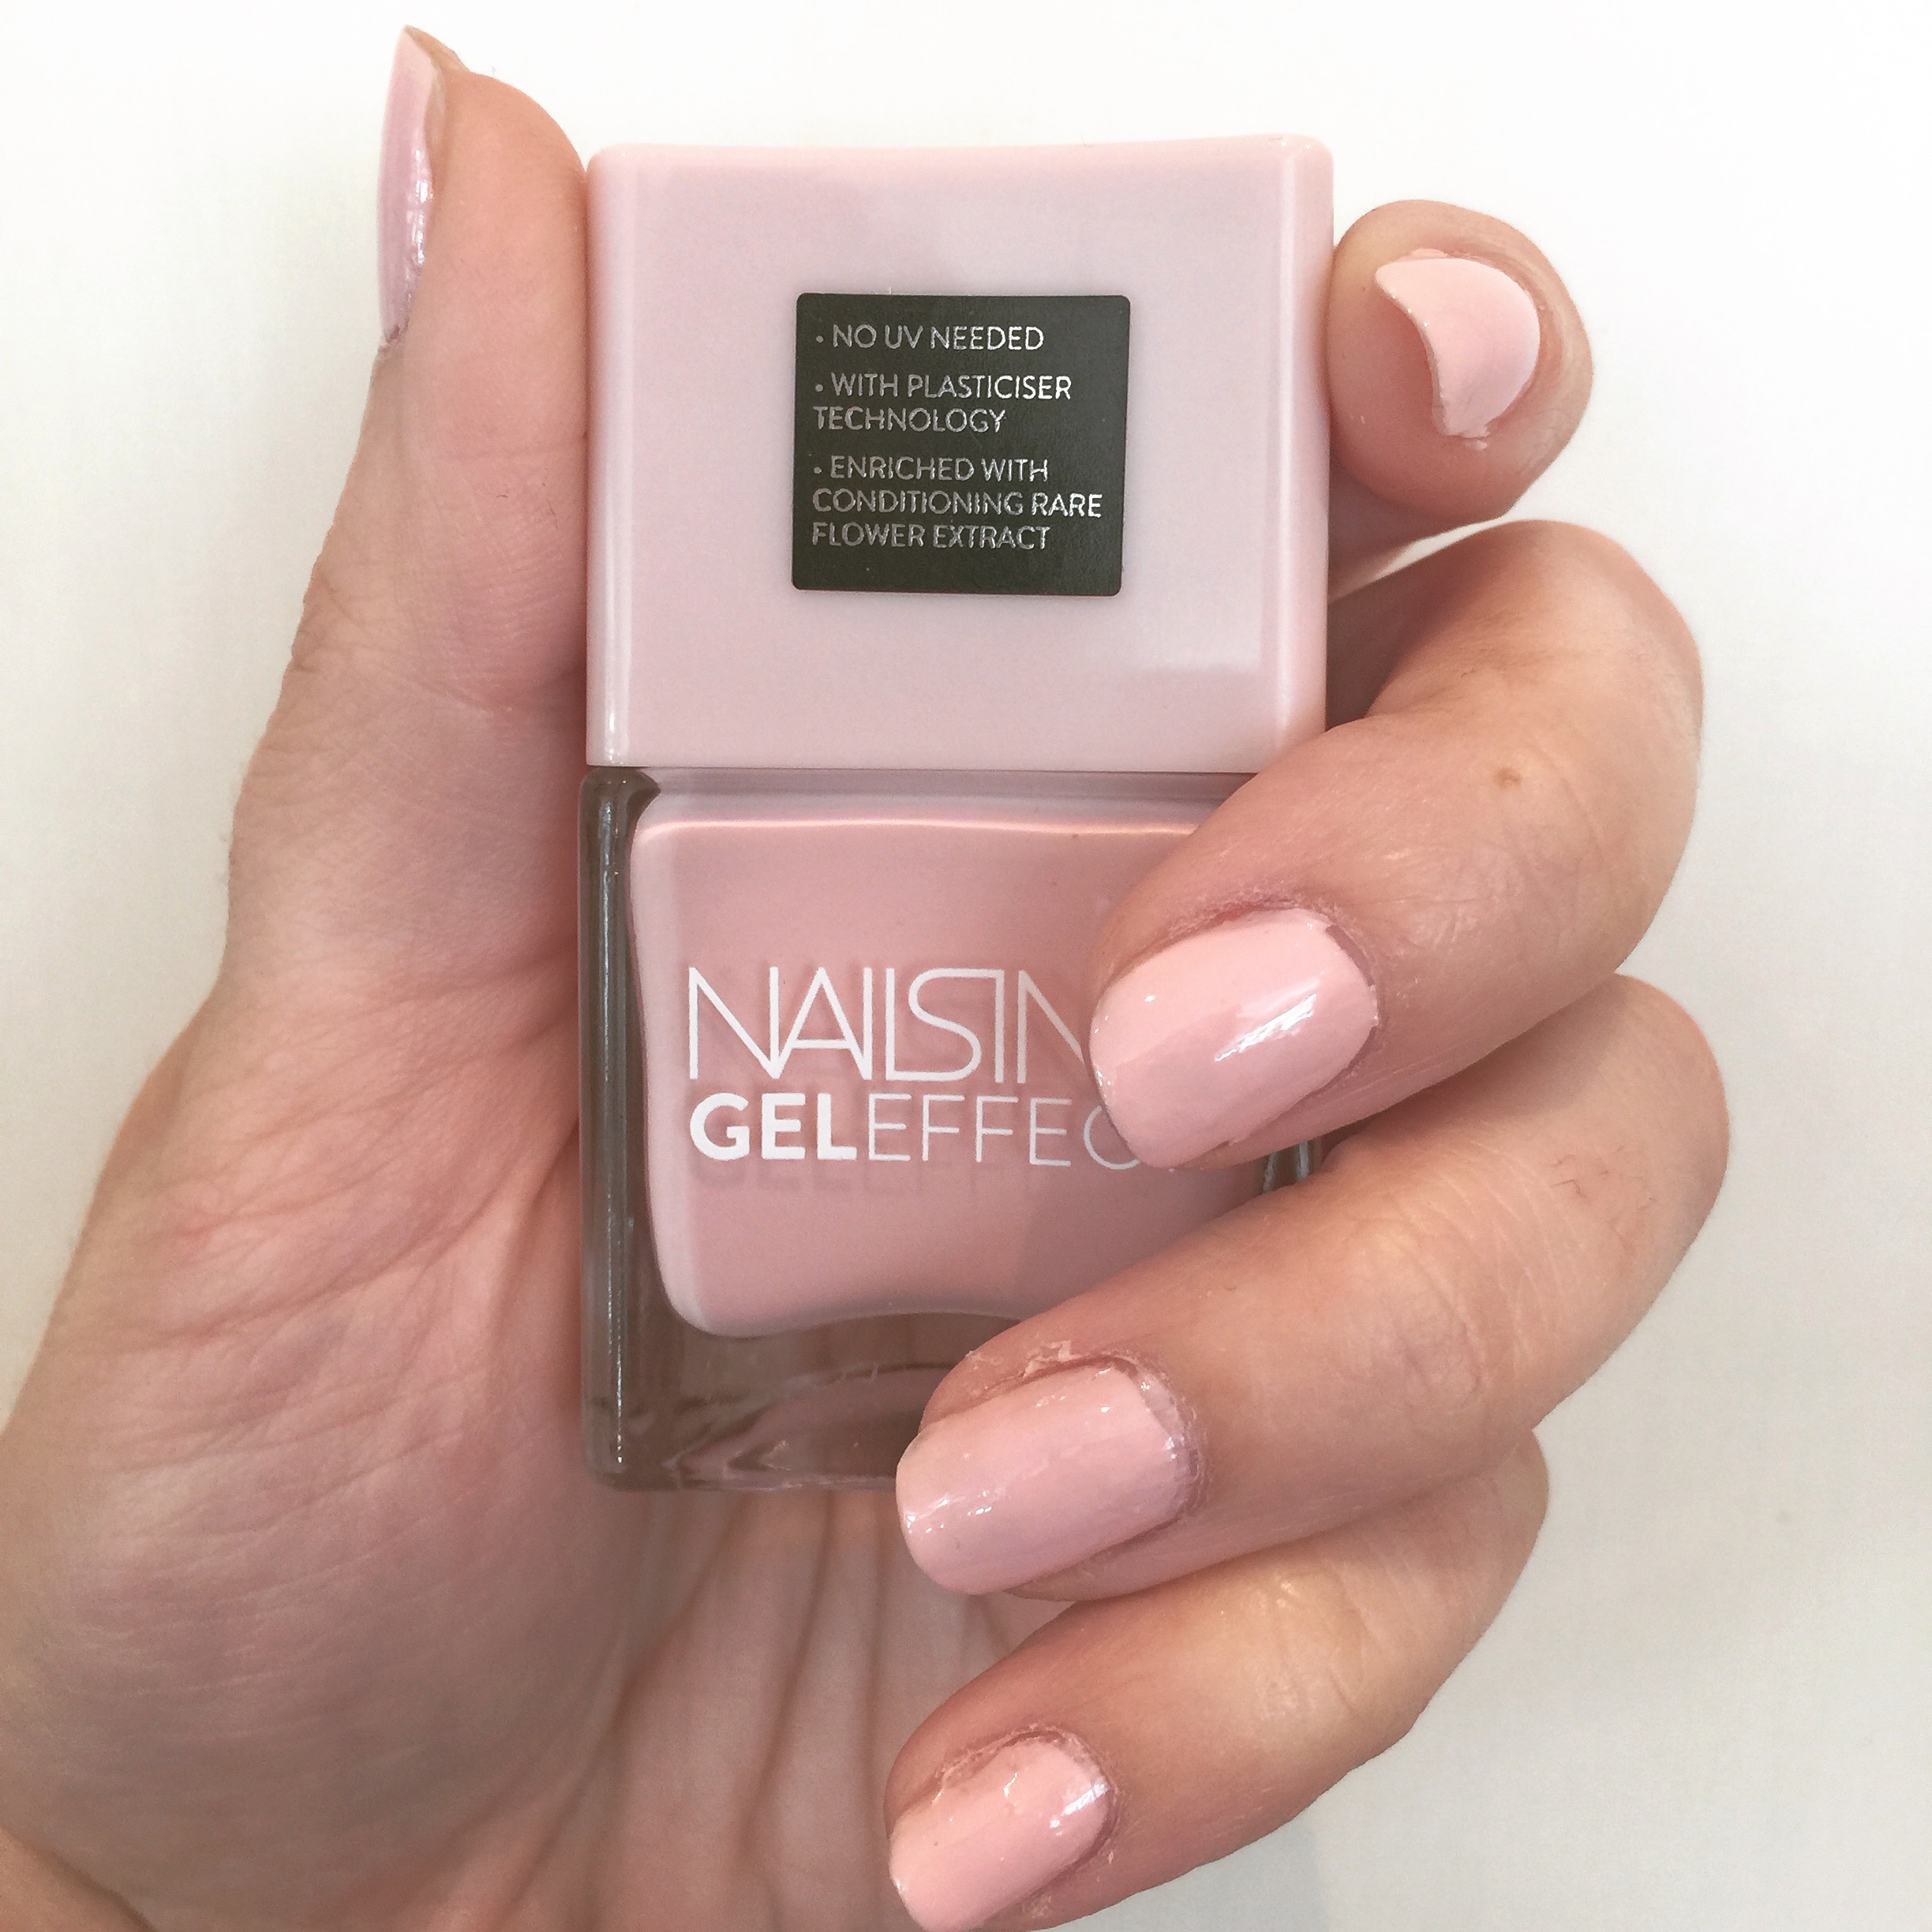 Nails Inc Gel Effect in Mayfair Lane | Lipstick and L\'Attitude